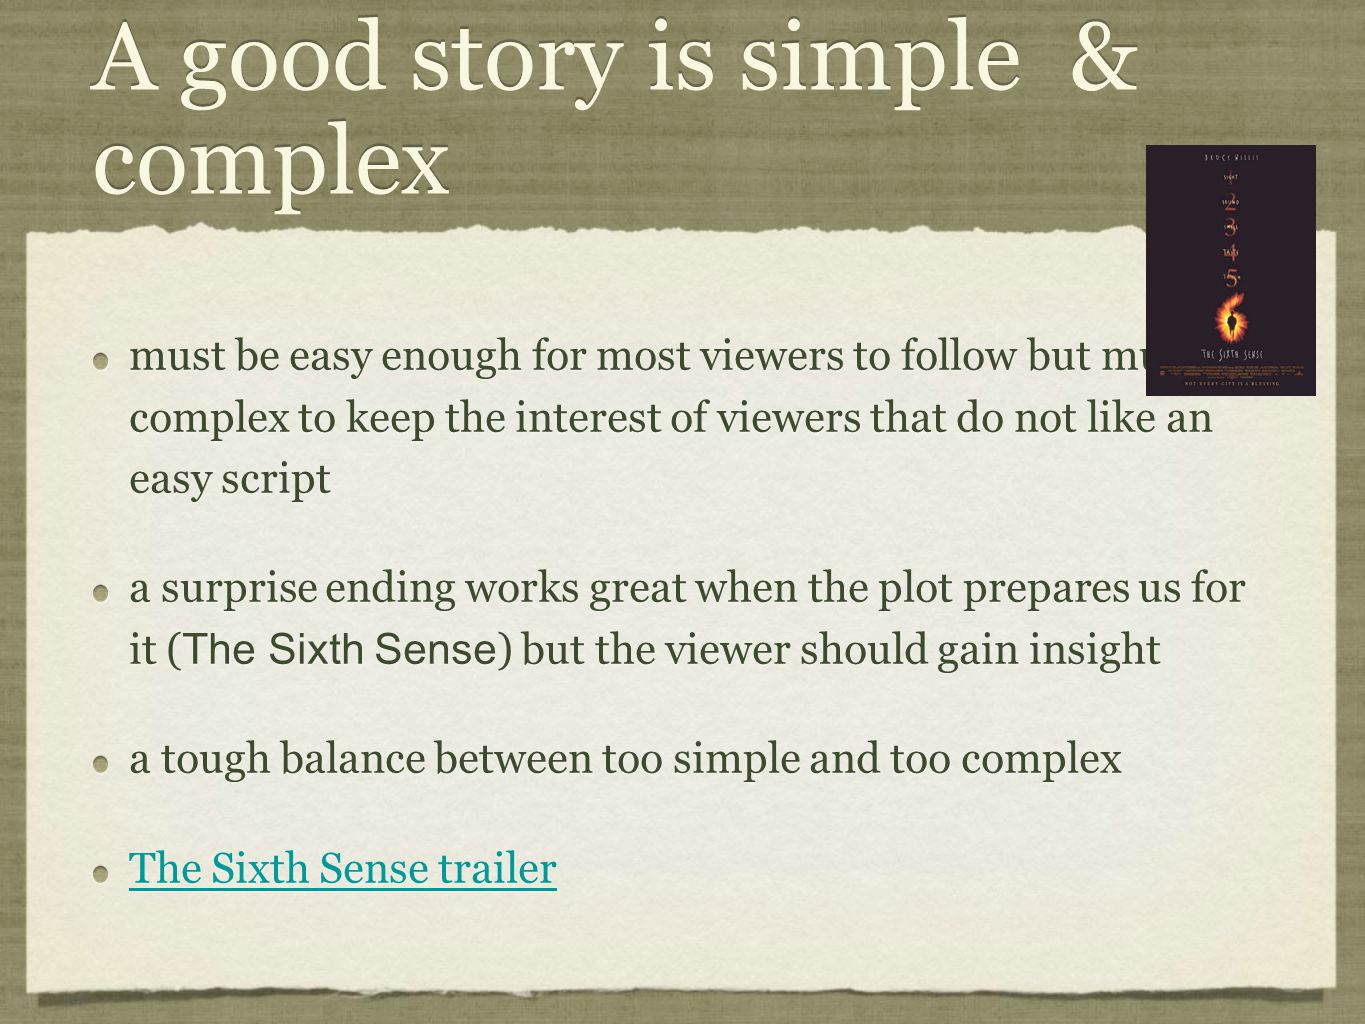 A good story is simple & complex